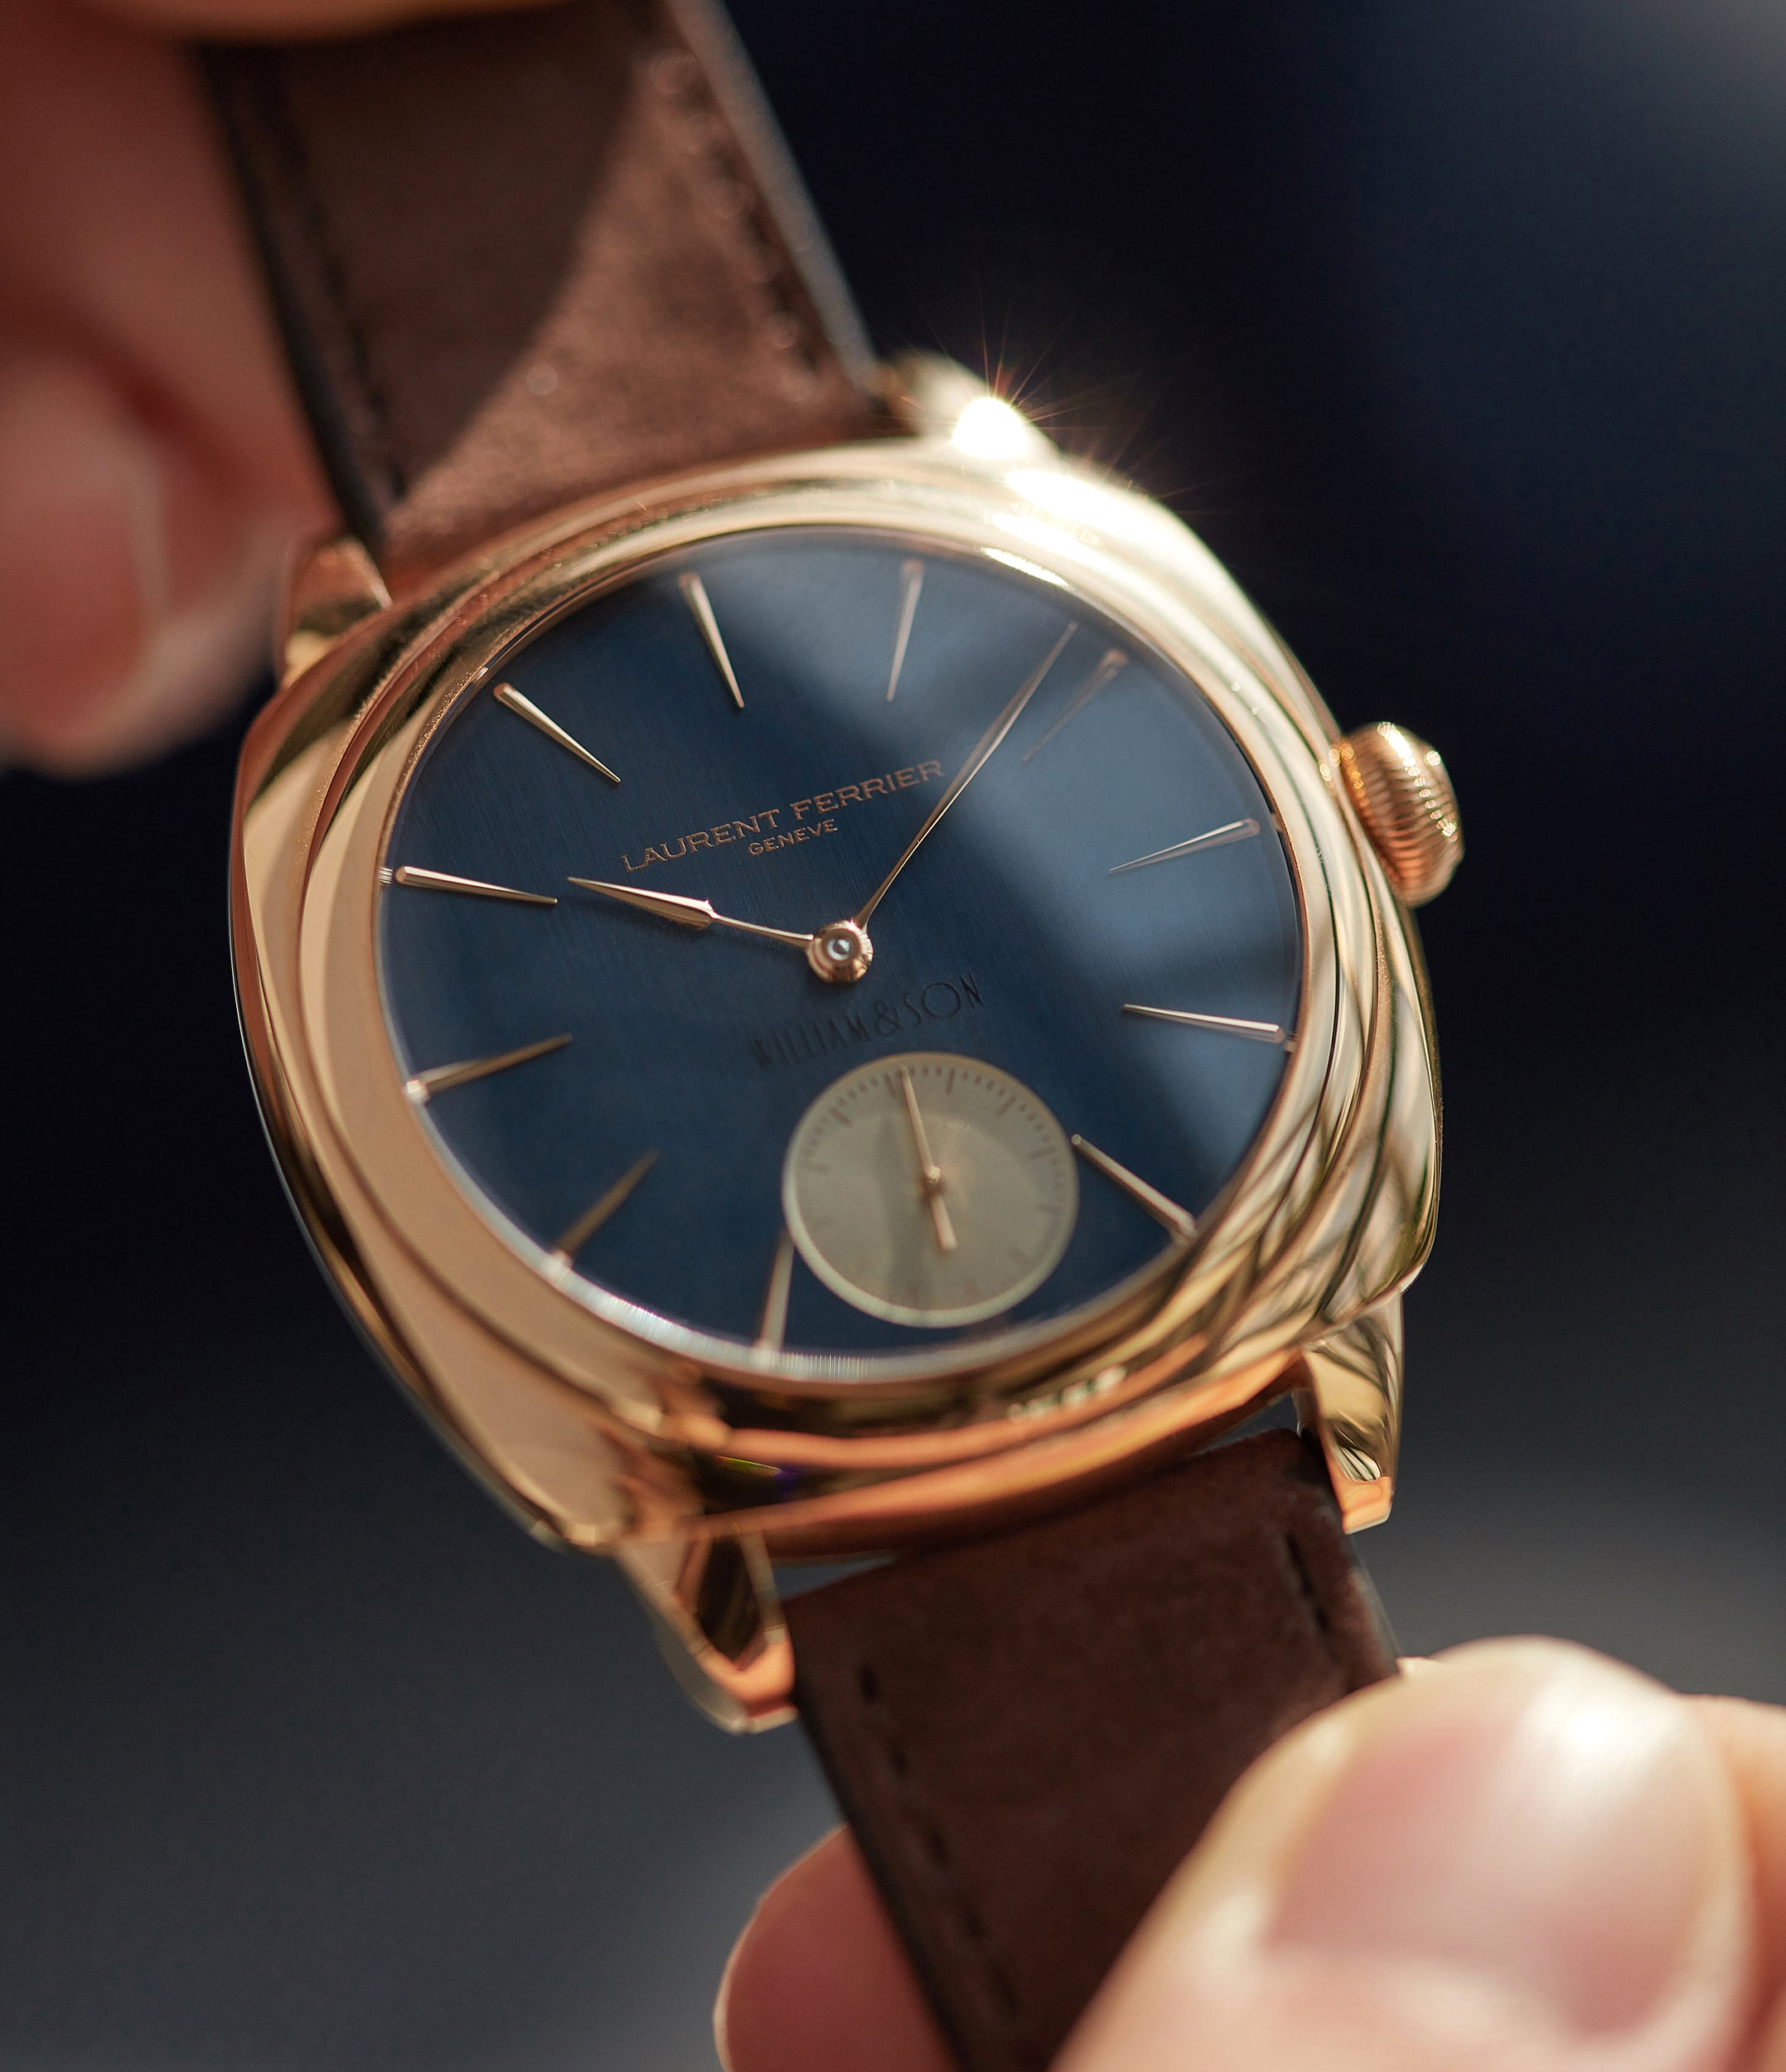 selling Laurent Ferrier Galet Square Micro-rotor blue dial by  William & Son rose gold rare luxury dress watch for sale online at A Collected Man London UK specialist and approved reseller of rare independent watchmakers